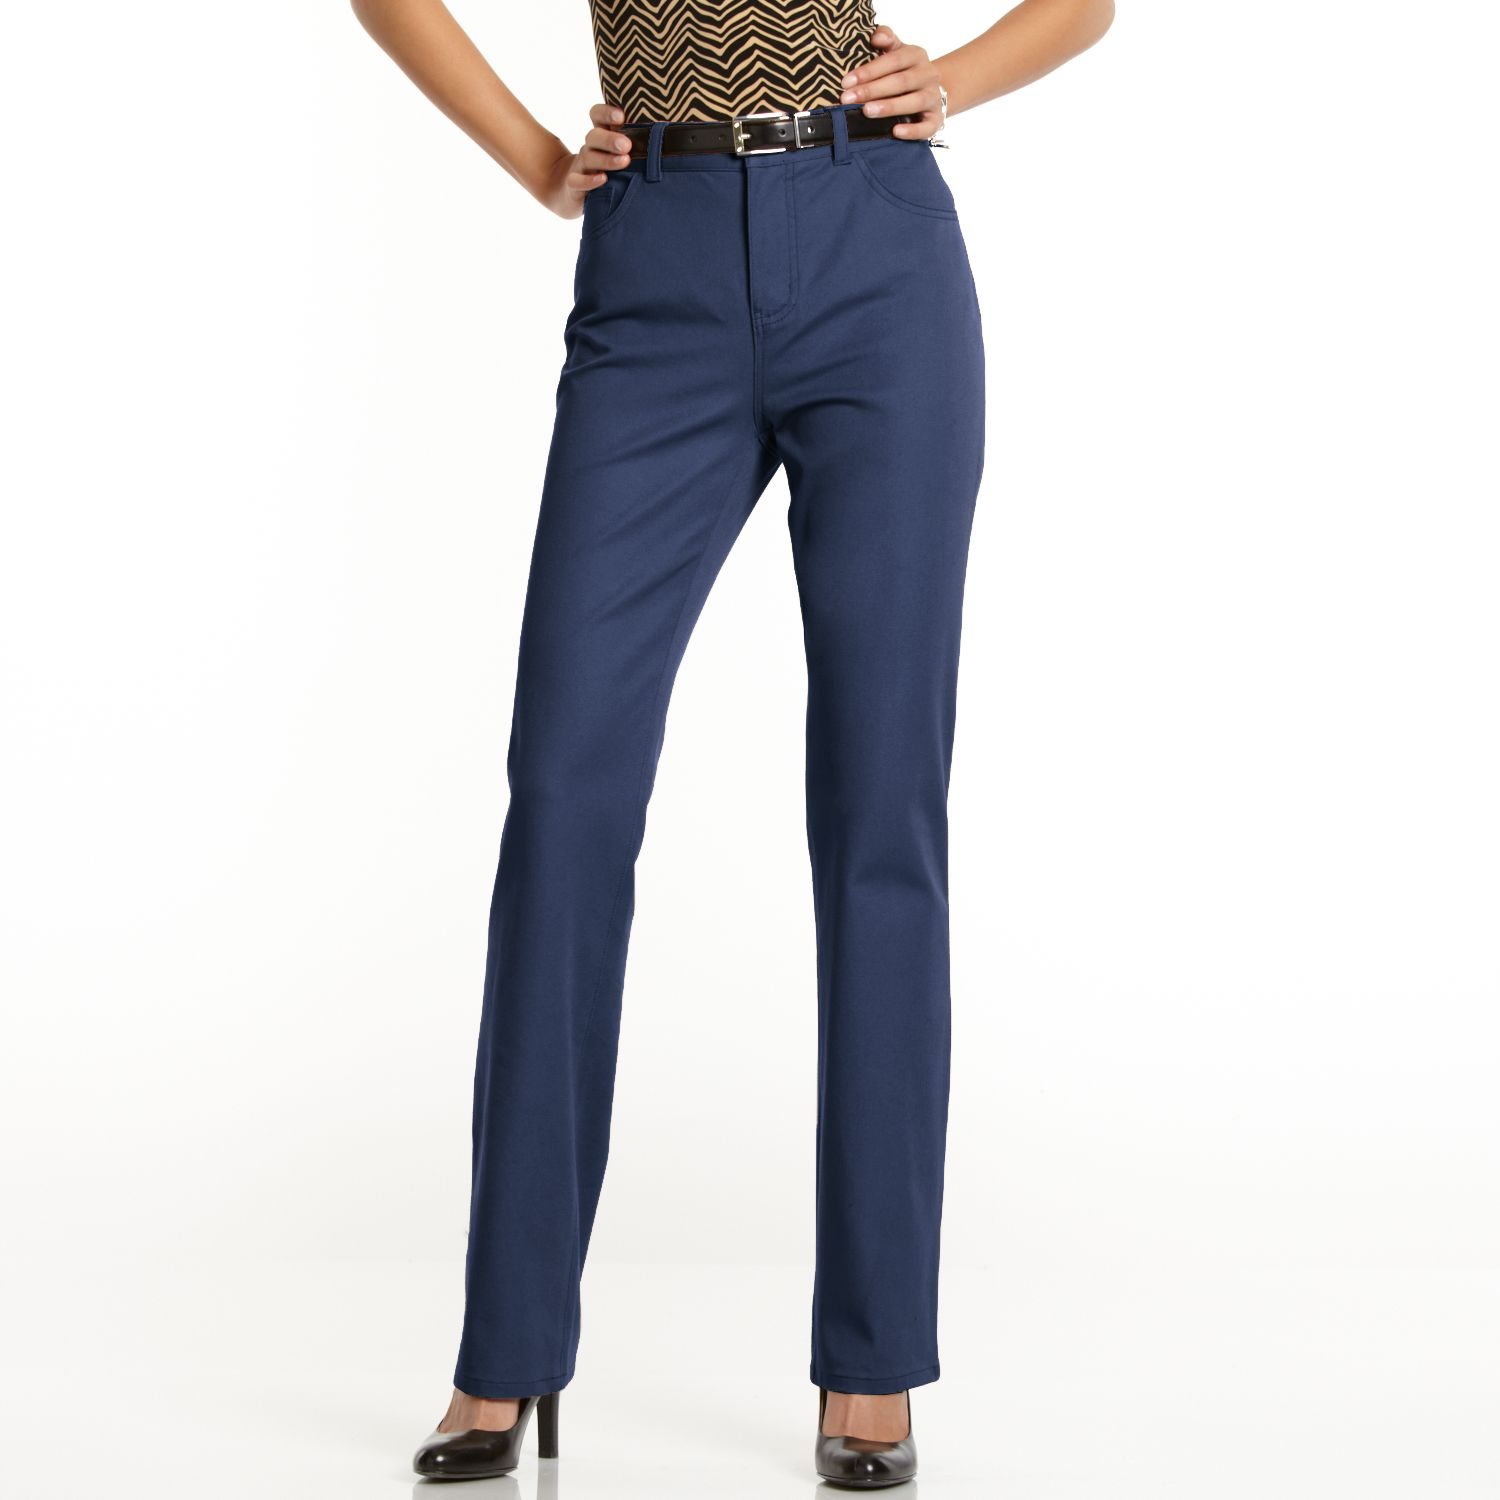 Navy Blue Womens Dress Pants - Fat Pants